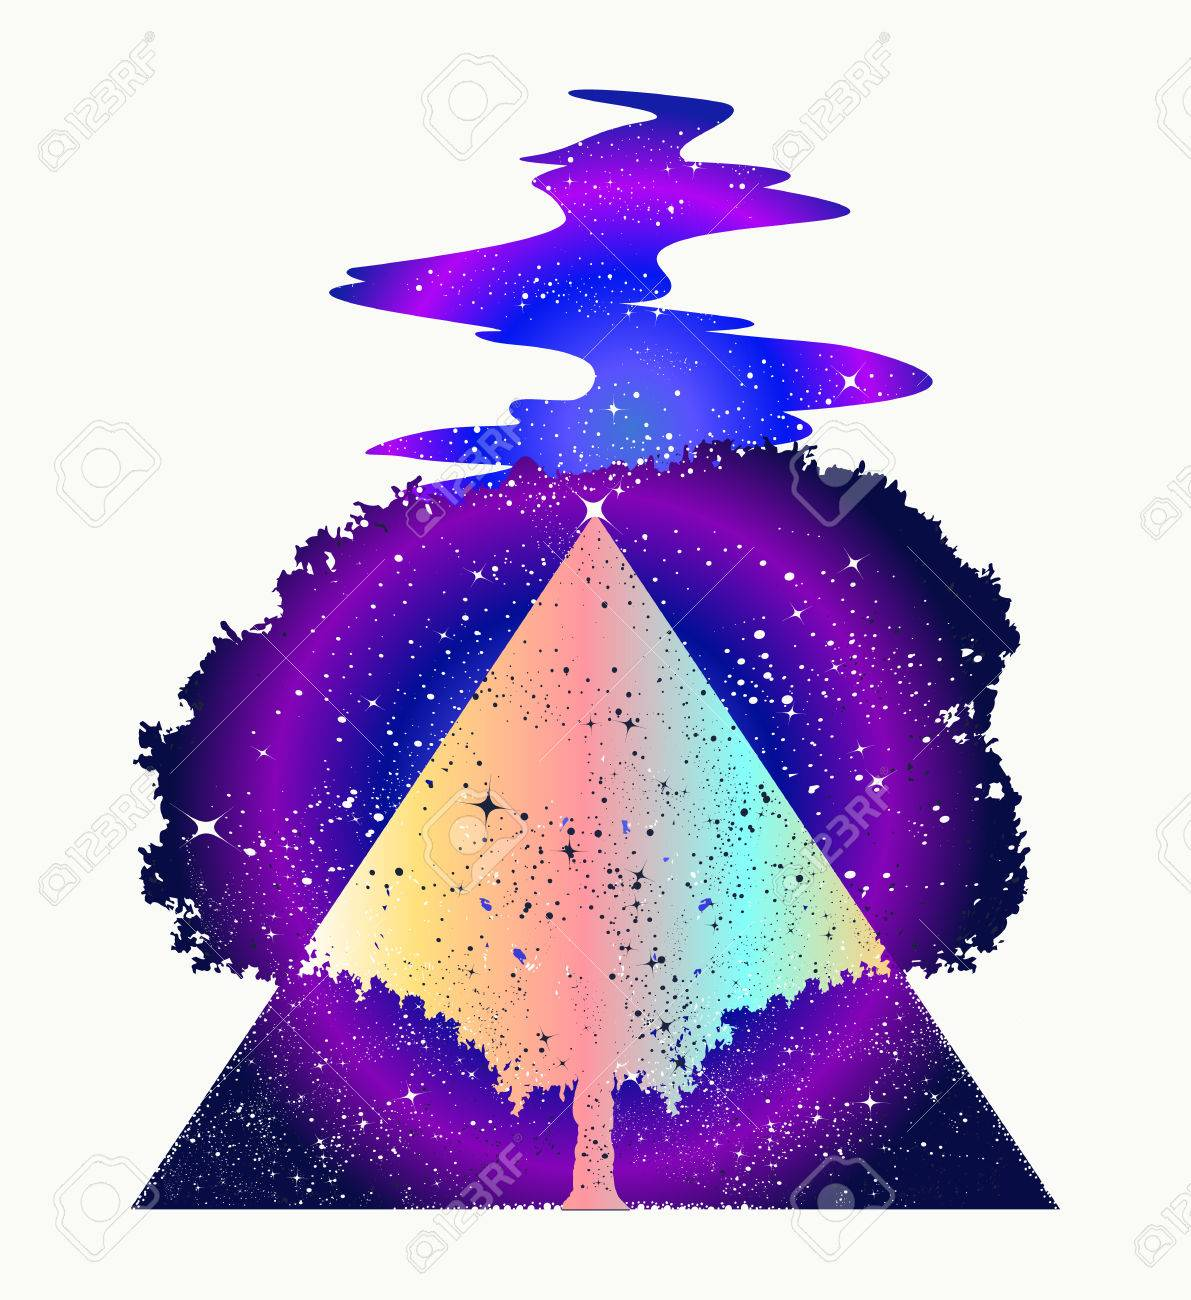 Magic tree of life tattoo art, symbol of life and death. Star river. Mystic sign of immortality of human soul. Magic tree tattoo and t-shirt design. Symbols of psychology, symmetry, philosophy - 80498713